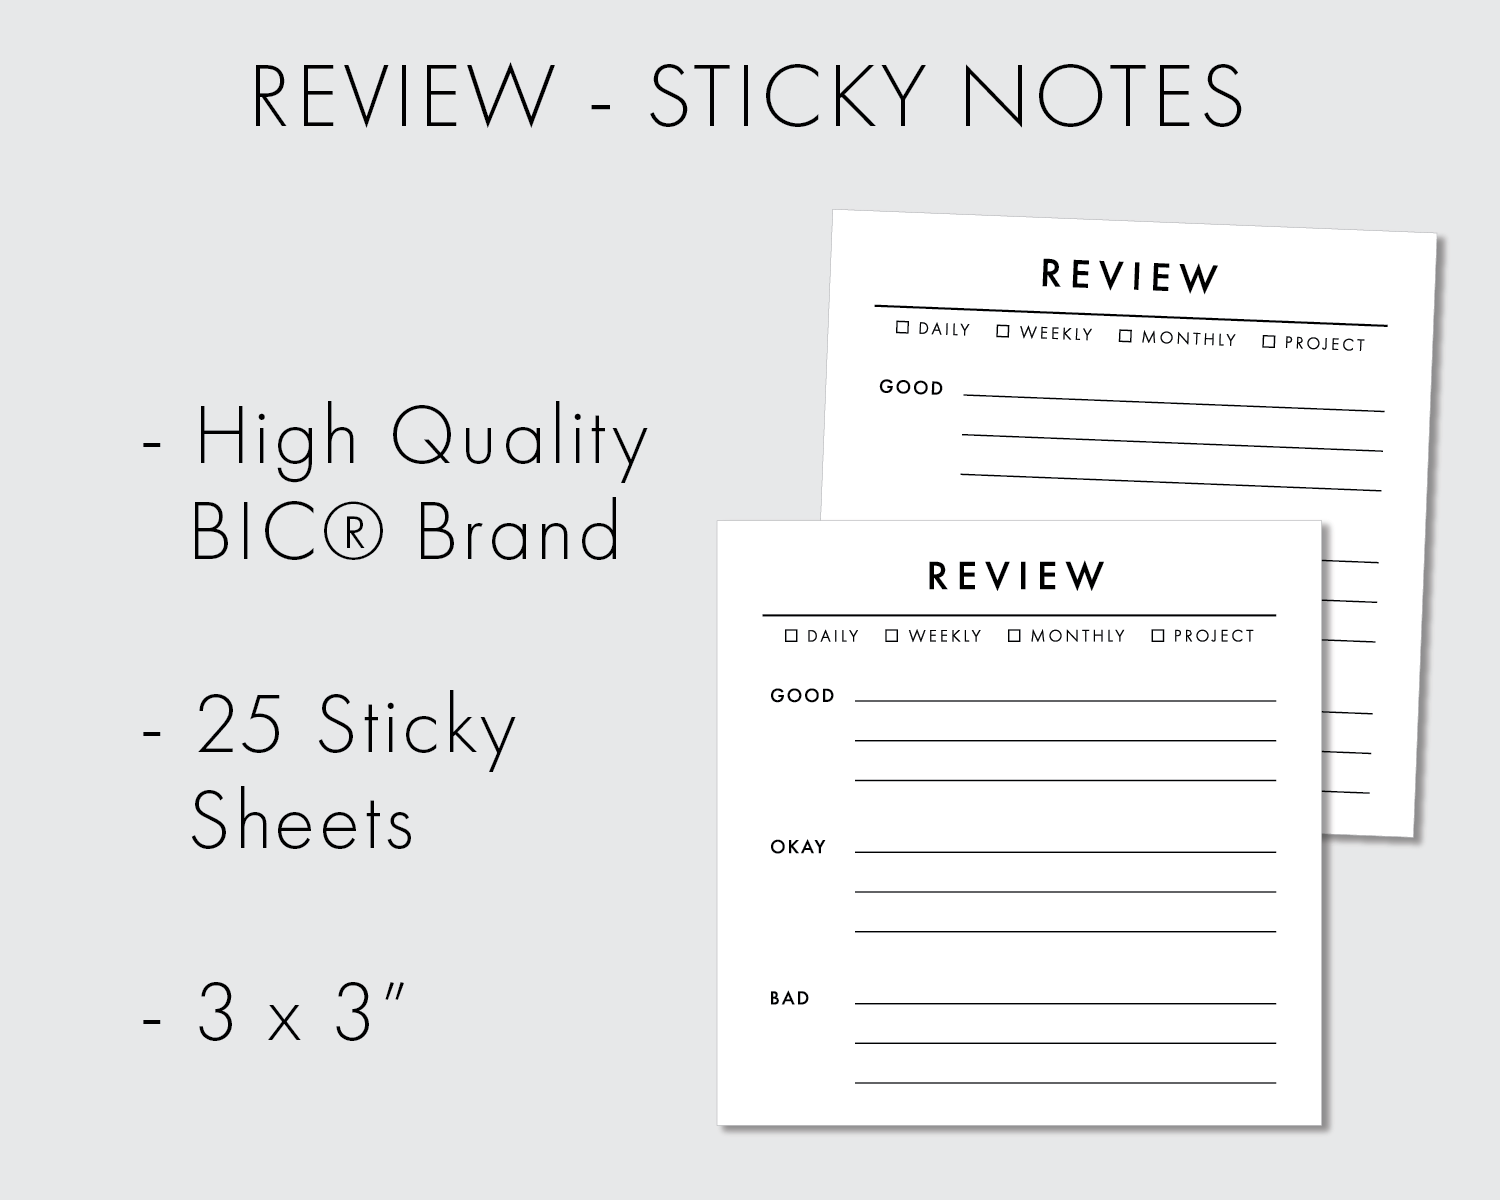 Sticky Notes - Review - 25 pages (083)